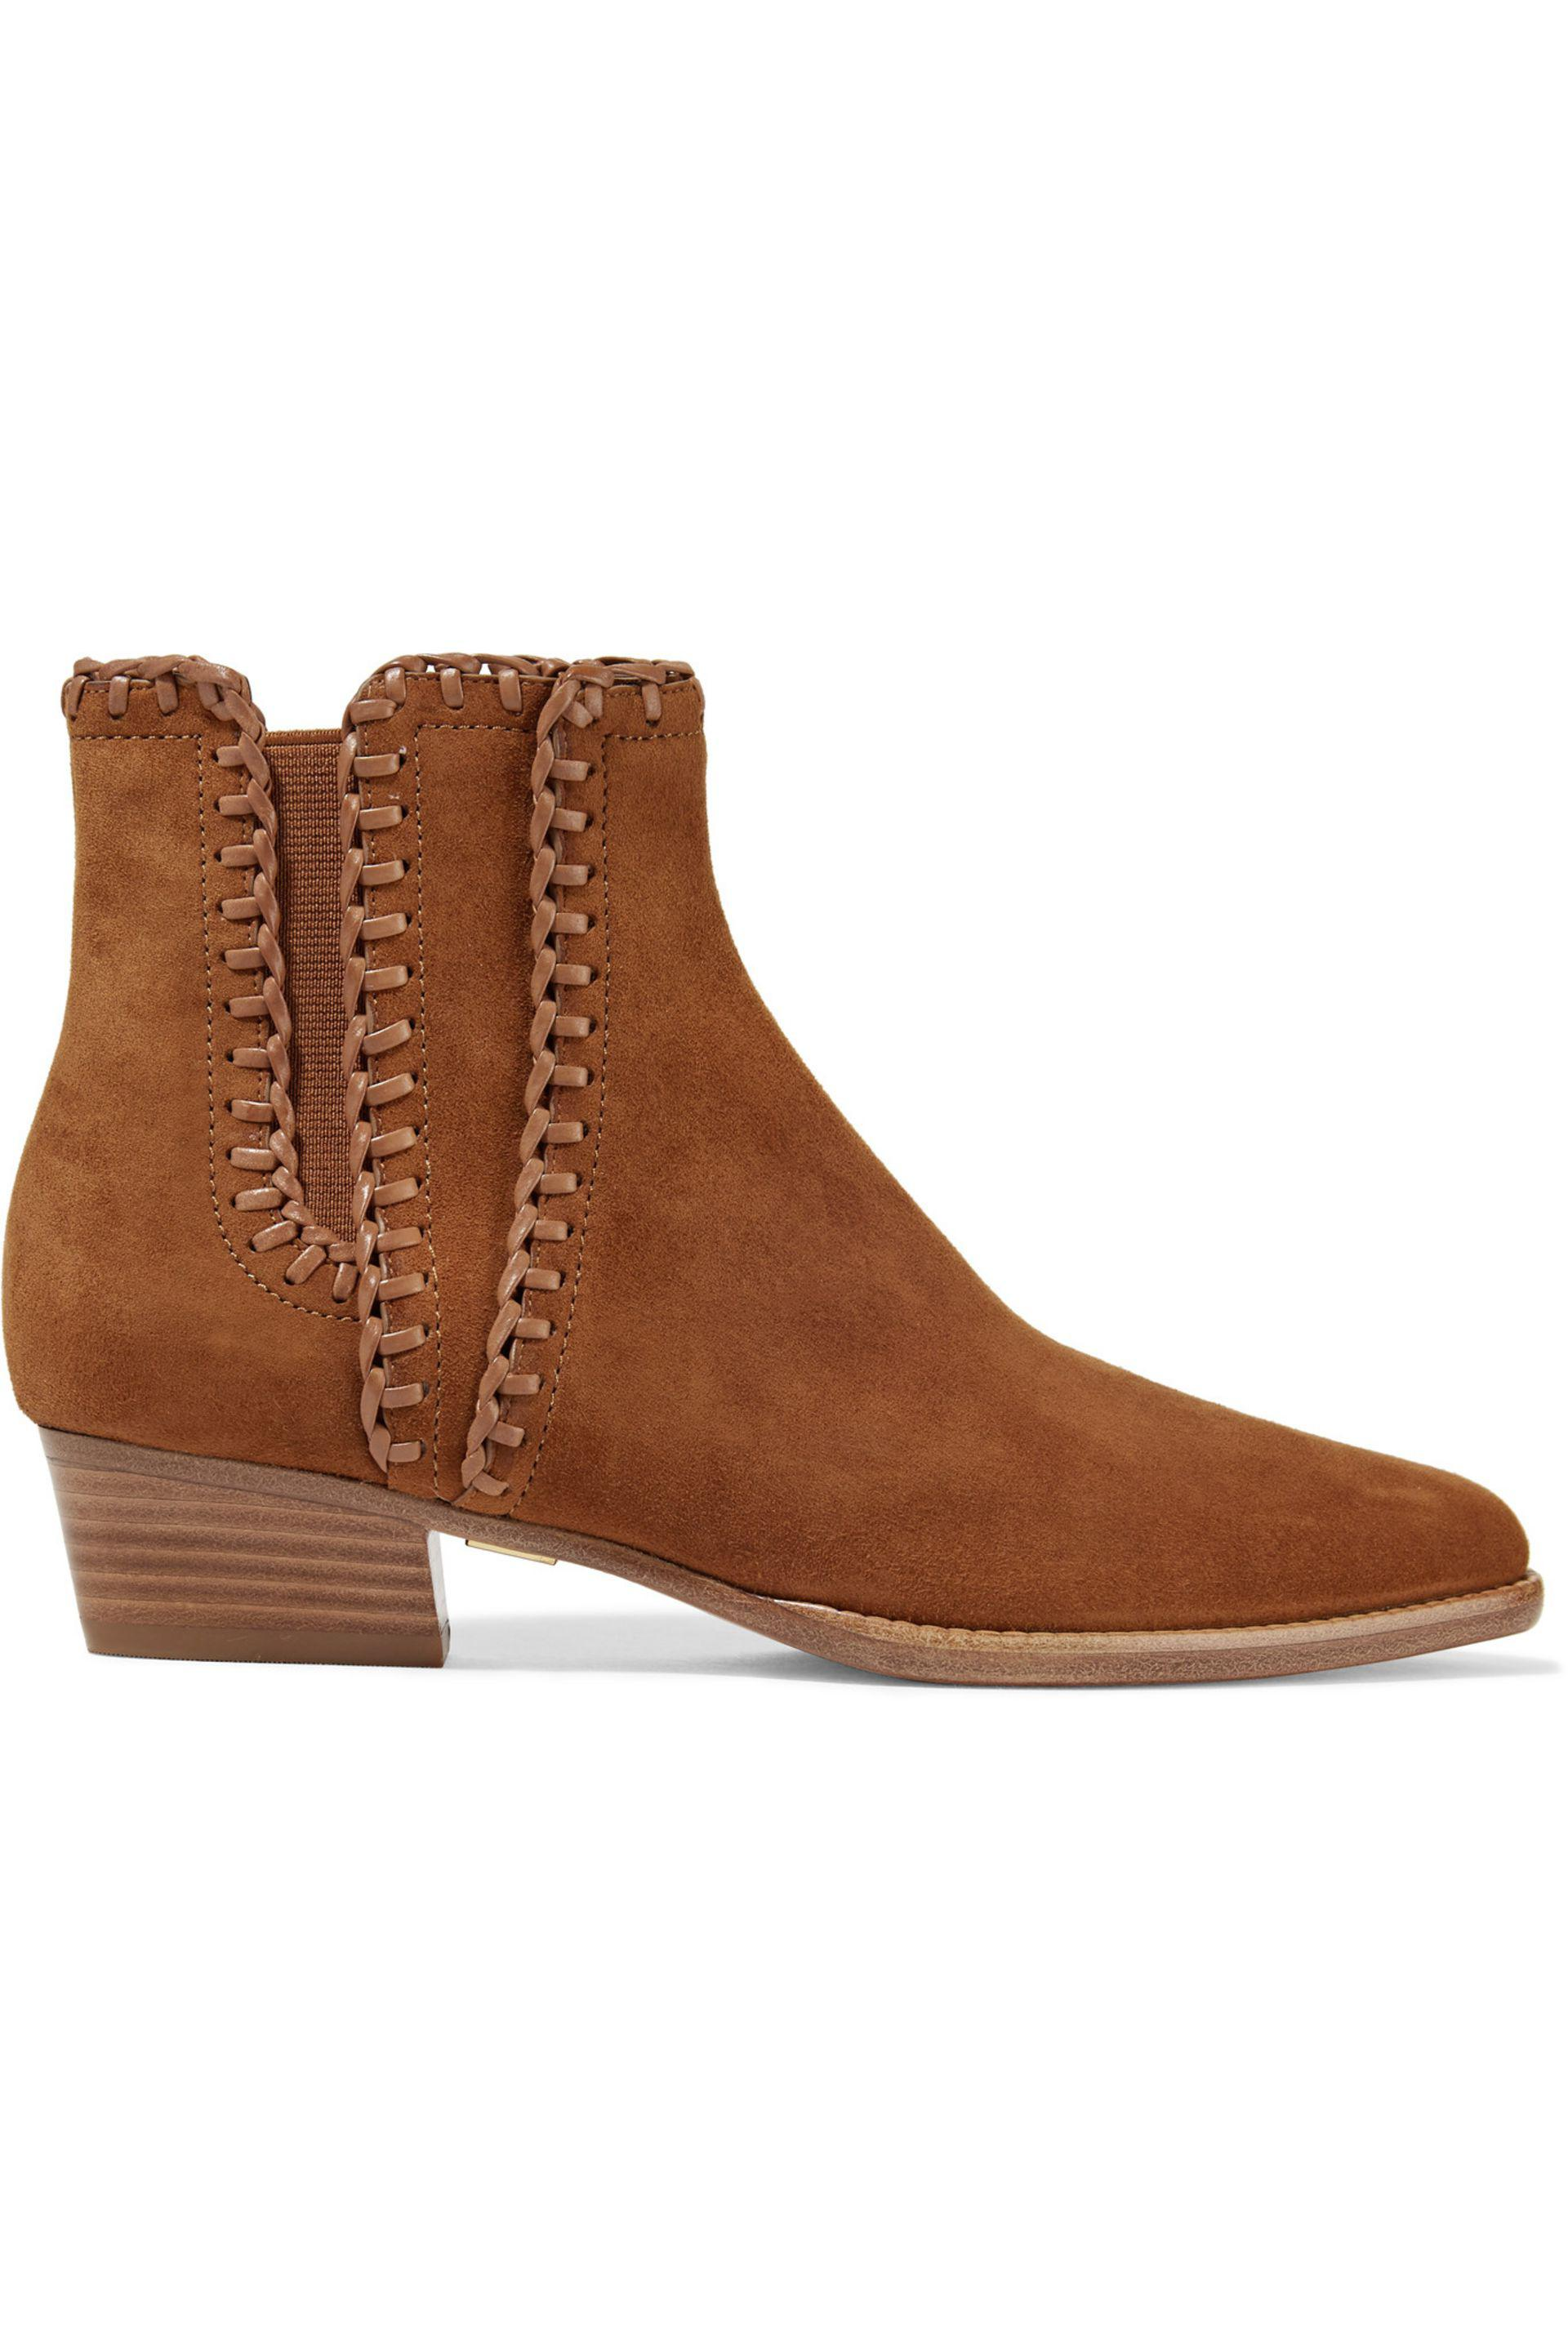 Michael Kors. Women's Brown Presley Suede Ankle Boots